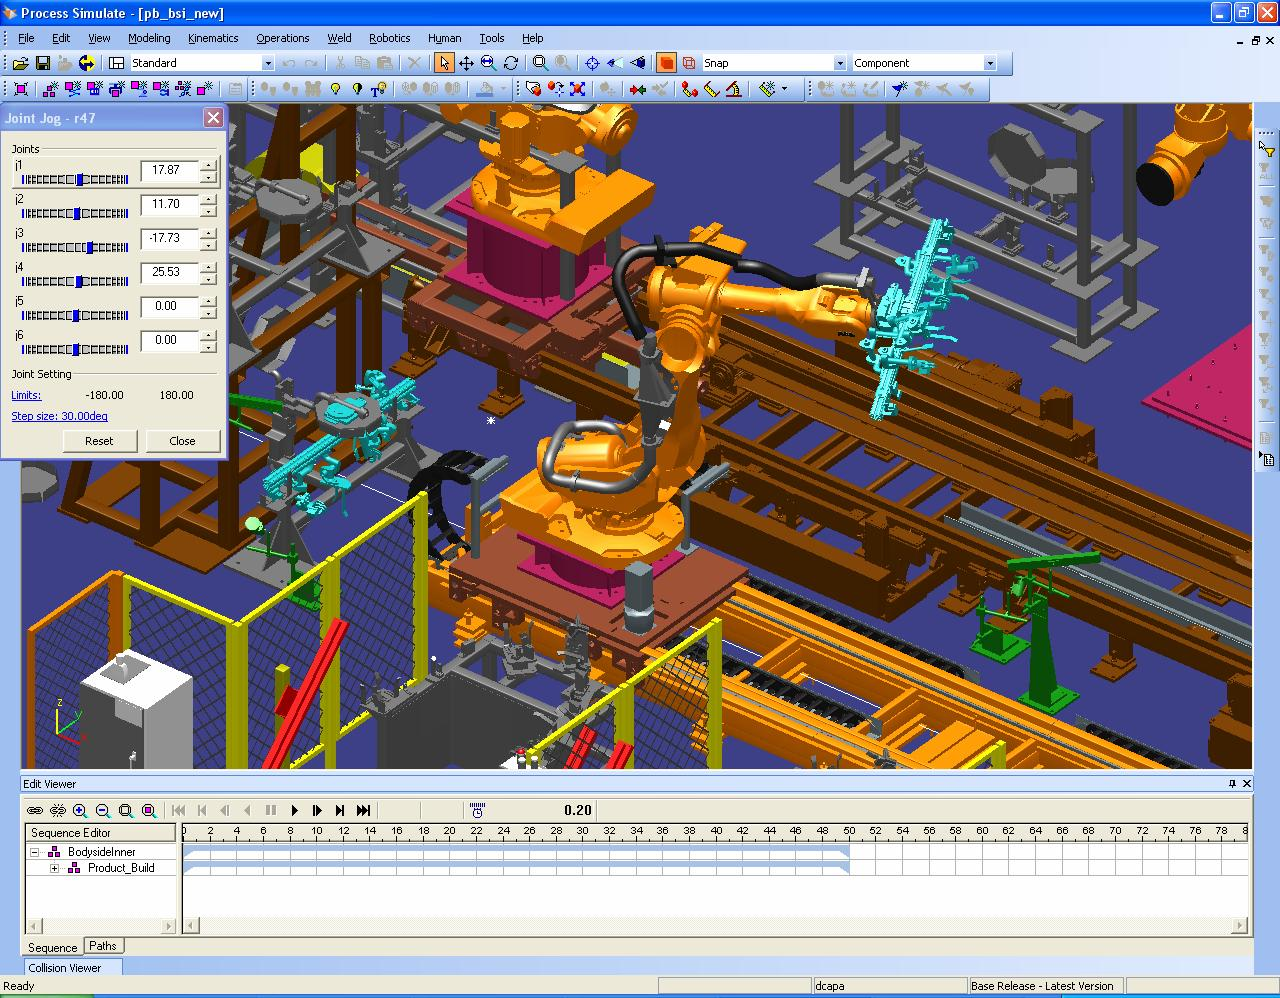 A 3D image of a manufacturing robot in Siemens Process Simulate